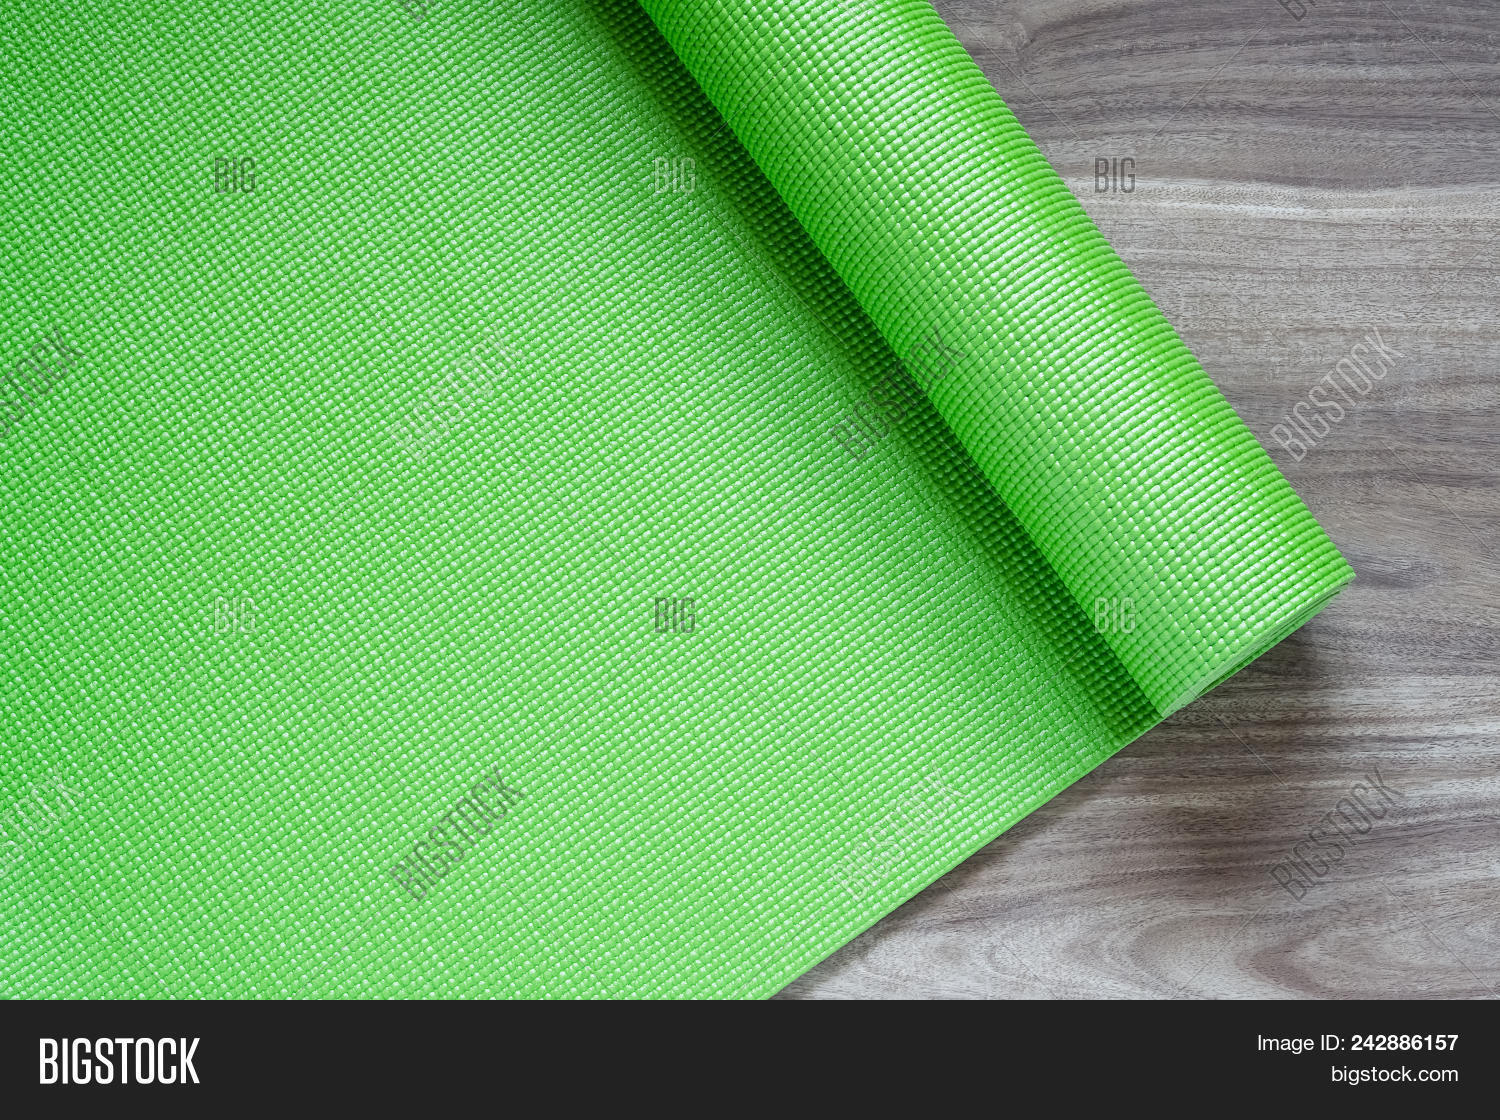 17b0196ebace0 Green yoga mat on a wooden background, Top View with copy space. Actie healthy  lifestyle background concept.